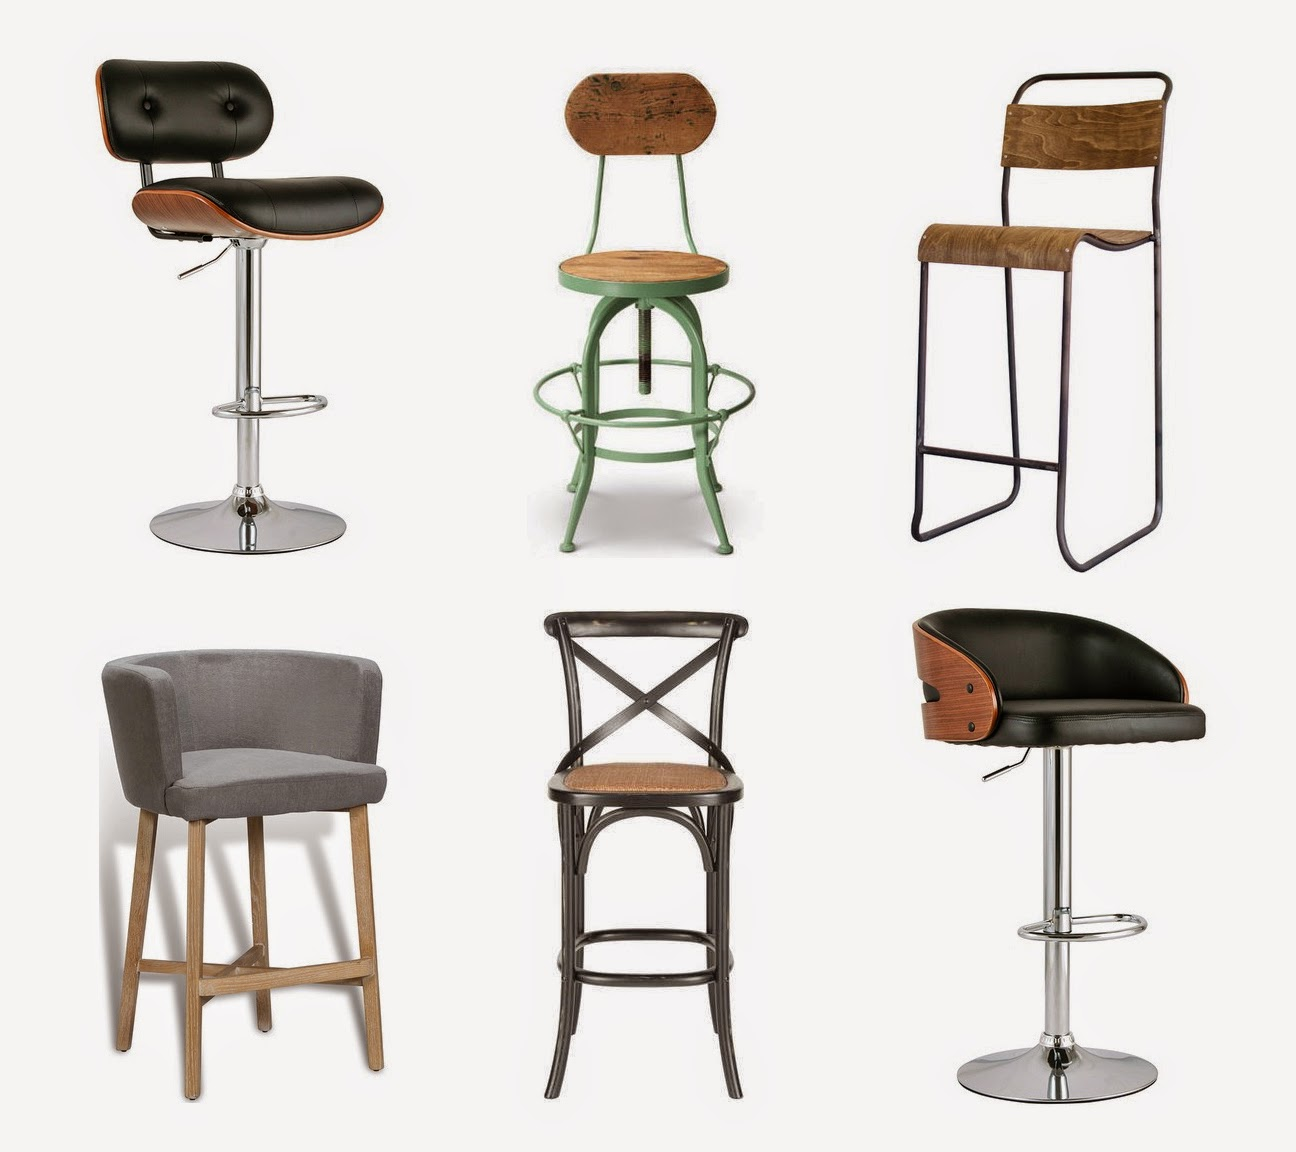 Bar Stools   High Chairs For Adults?